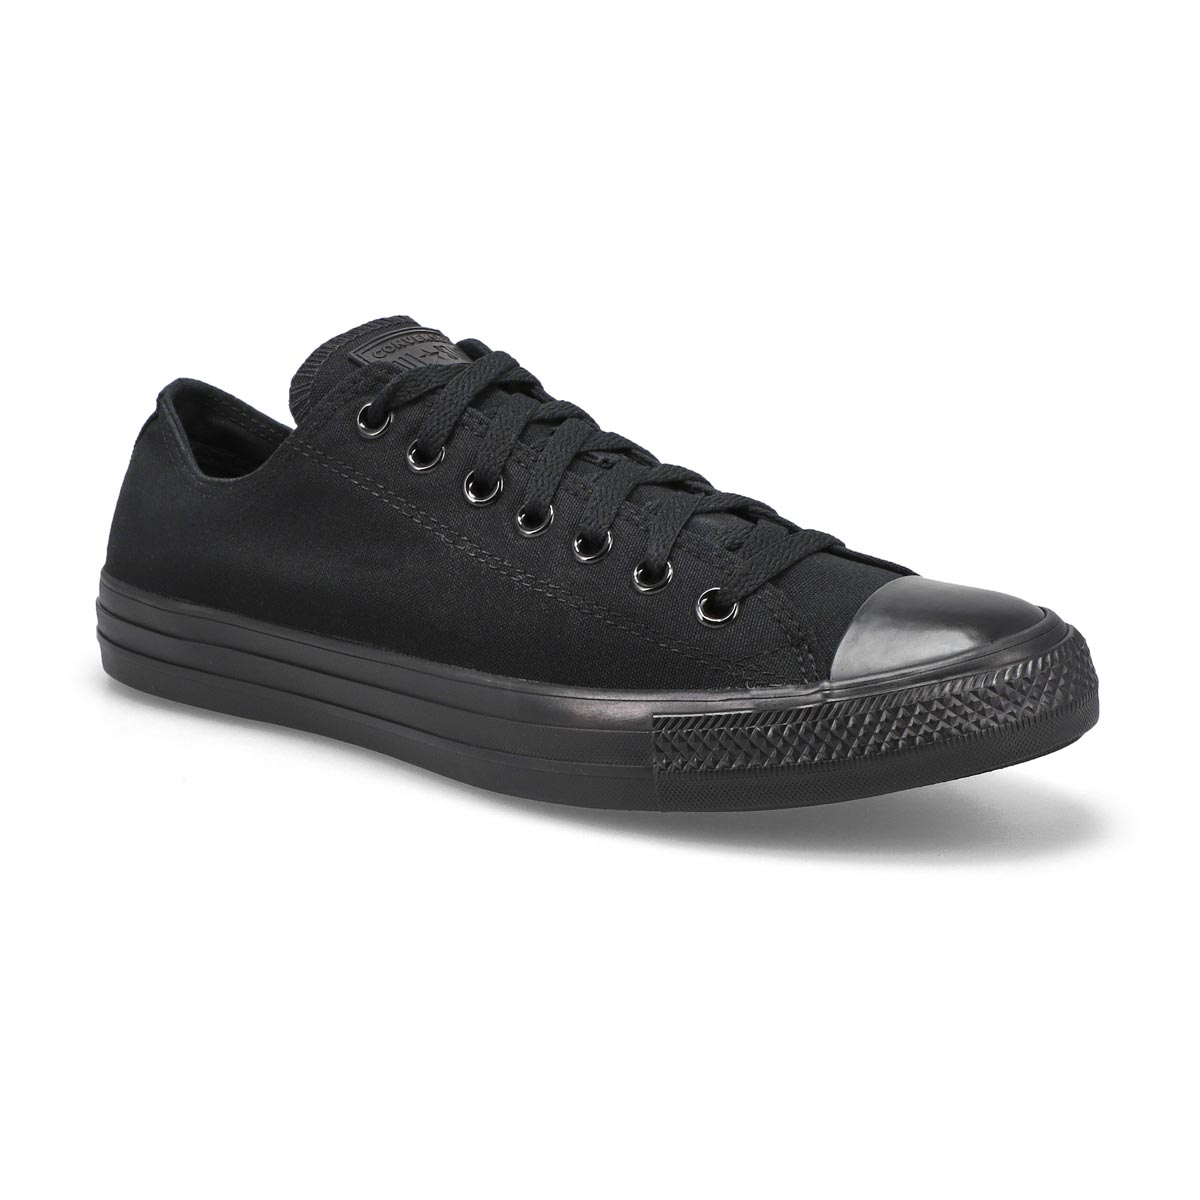 Men's CHUCK TAYLOR CORE OX black sneakers